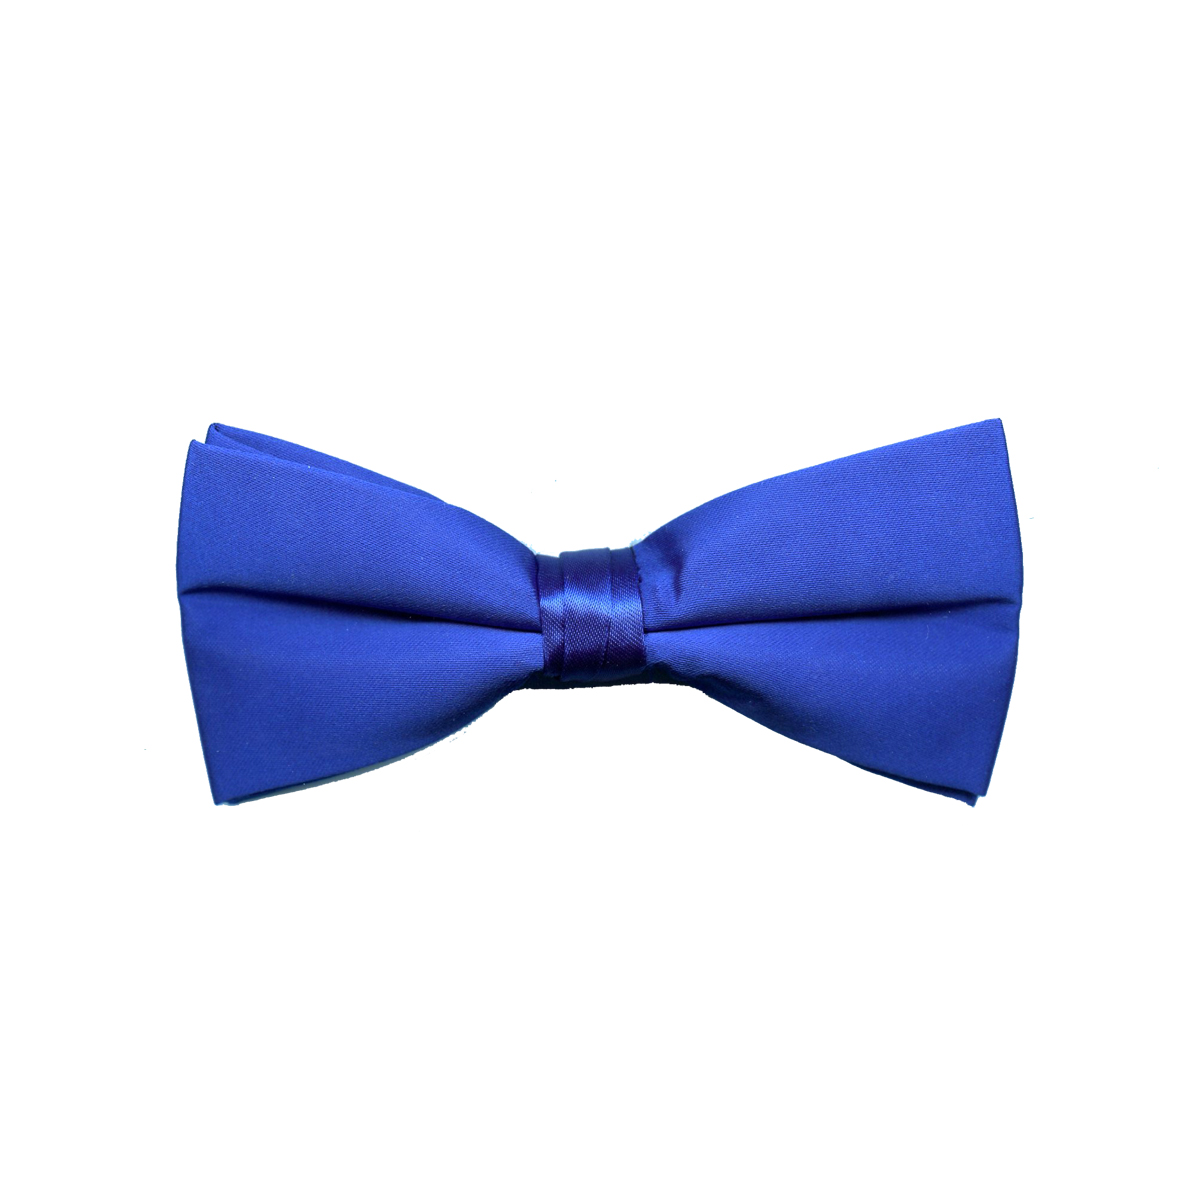 Bowtie clipart solid bow. Men s polyester satin